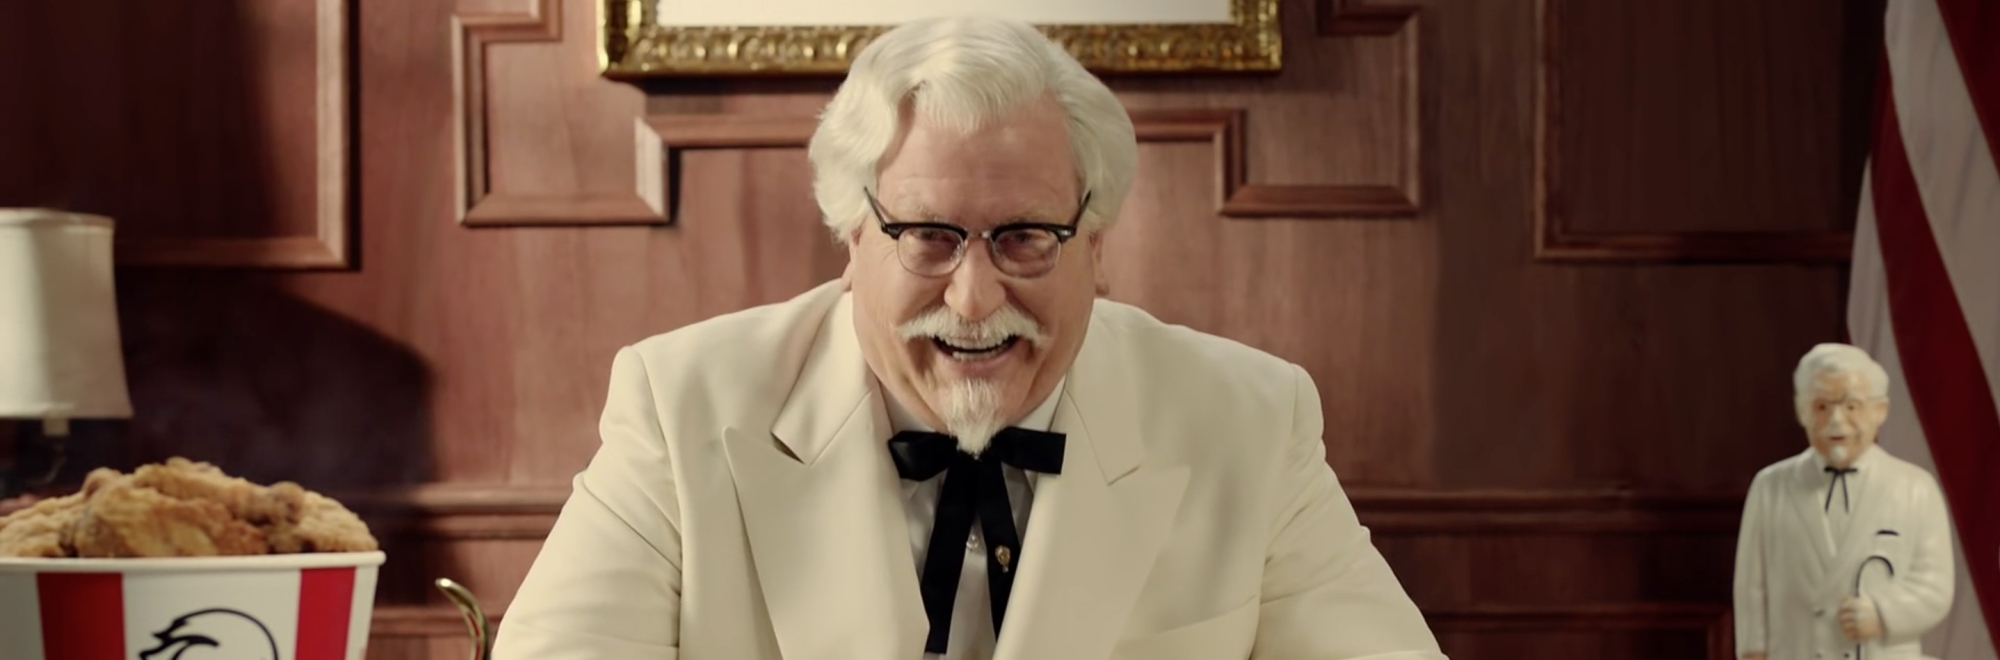 How KFC combined humour with nostalgia to generate public debate and reinvent itself